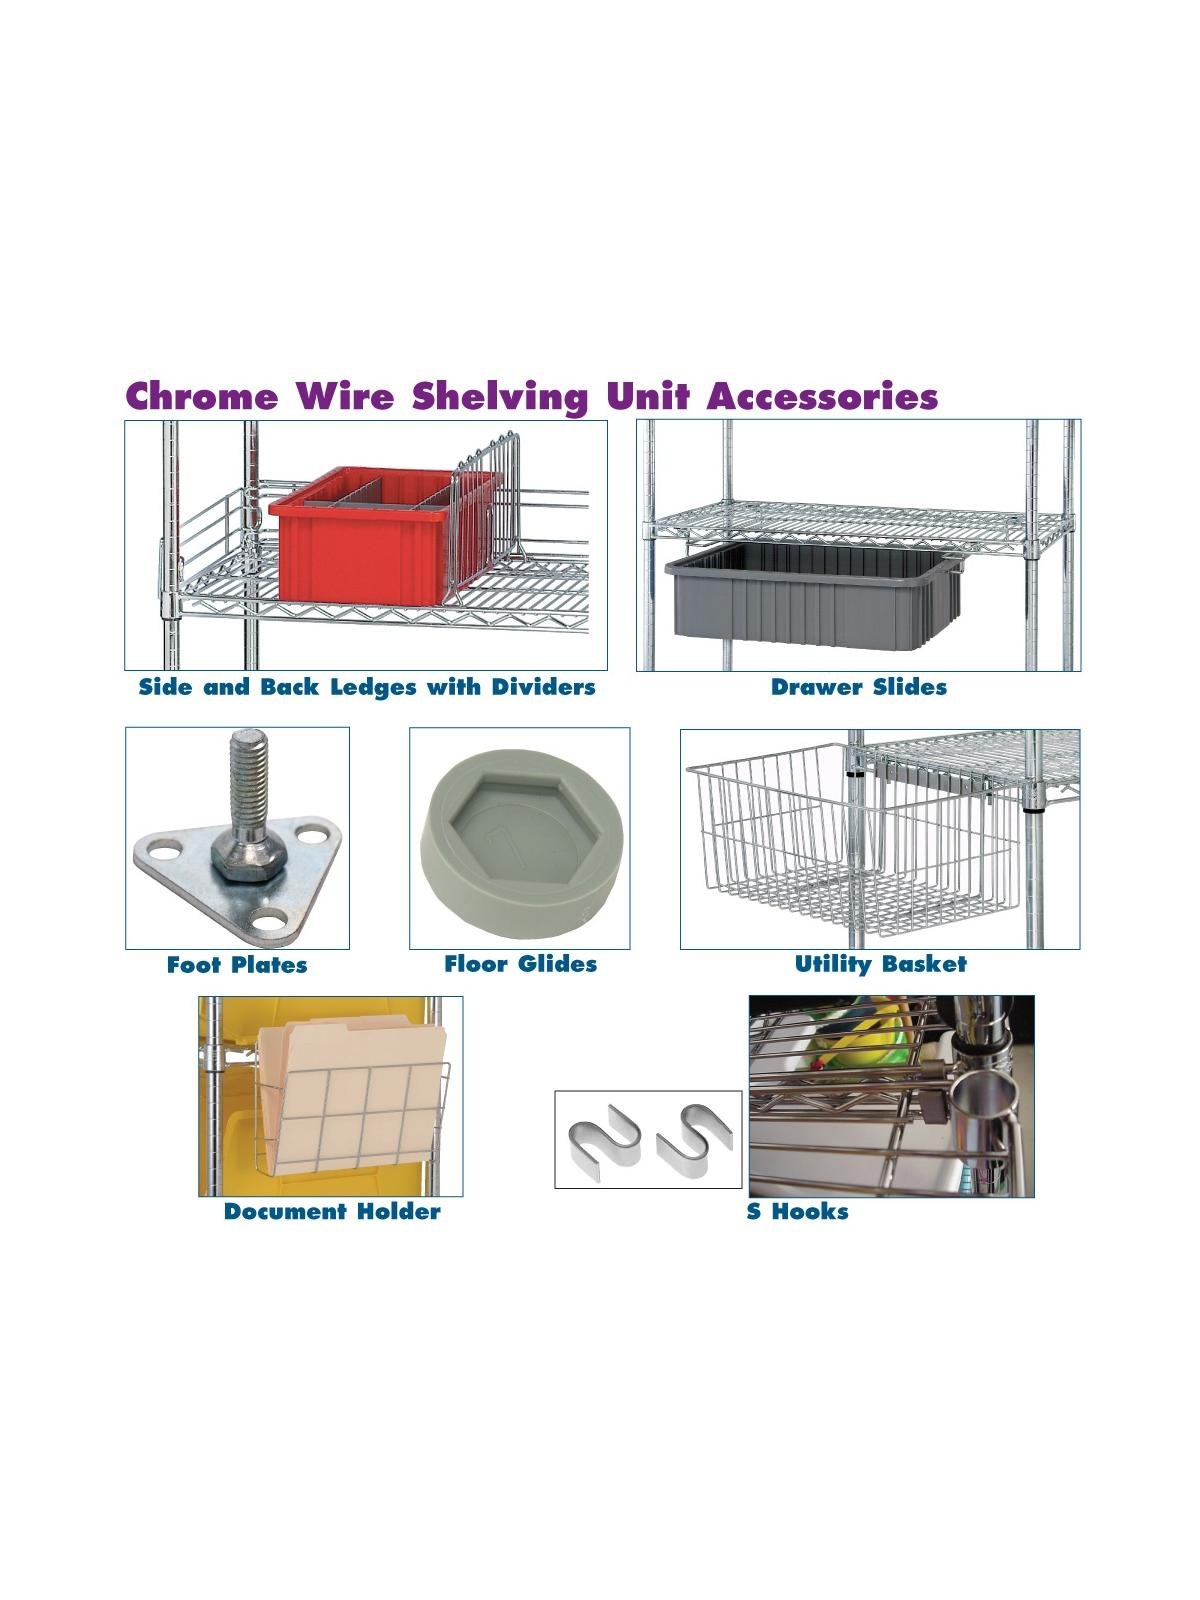 WIRE SHELVING PARTS  ACCESSORIES at Nationwide Industrial